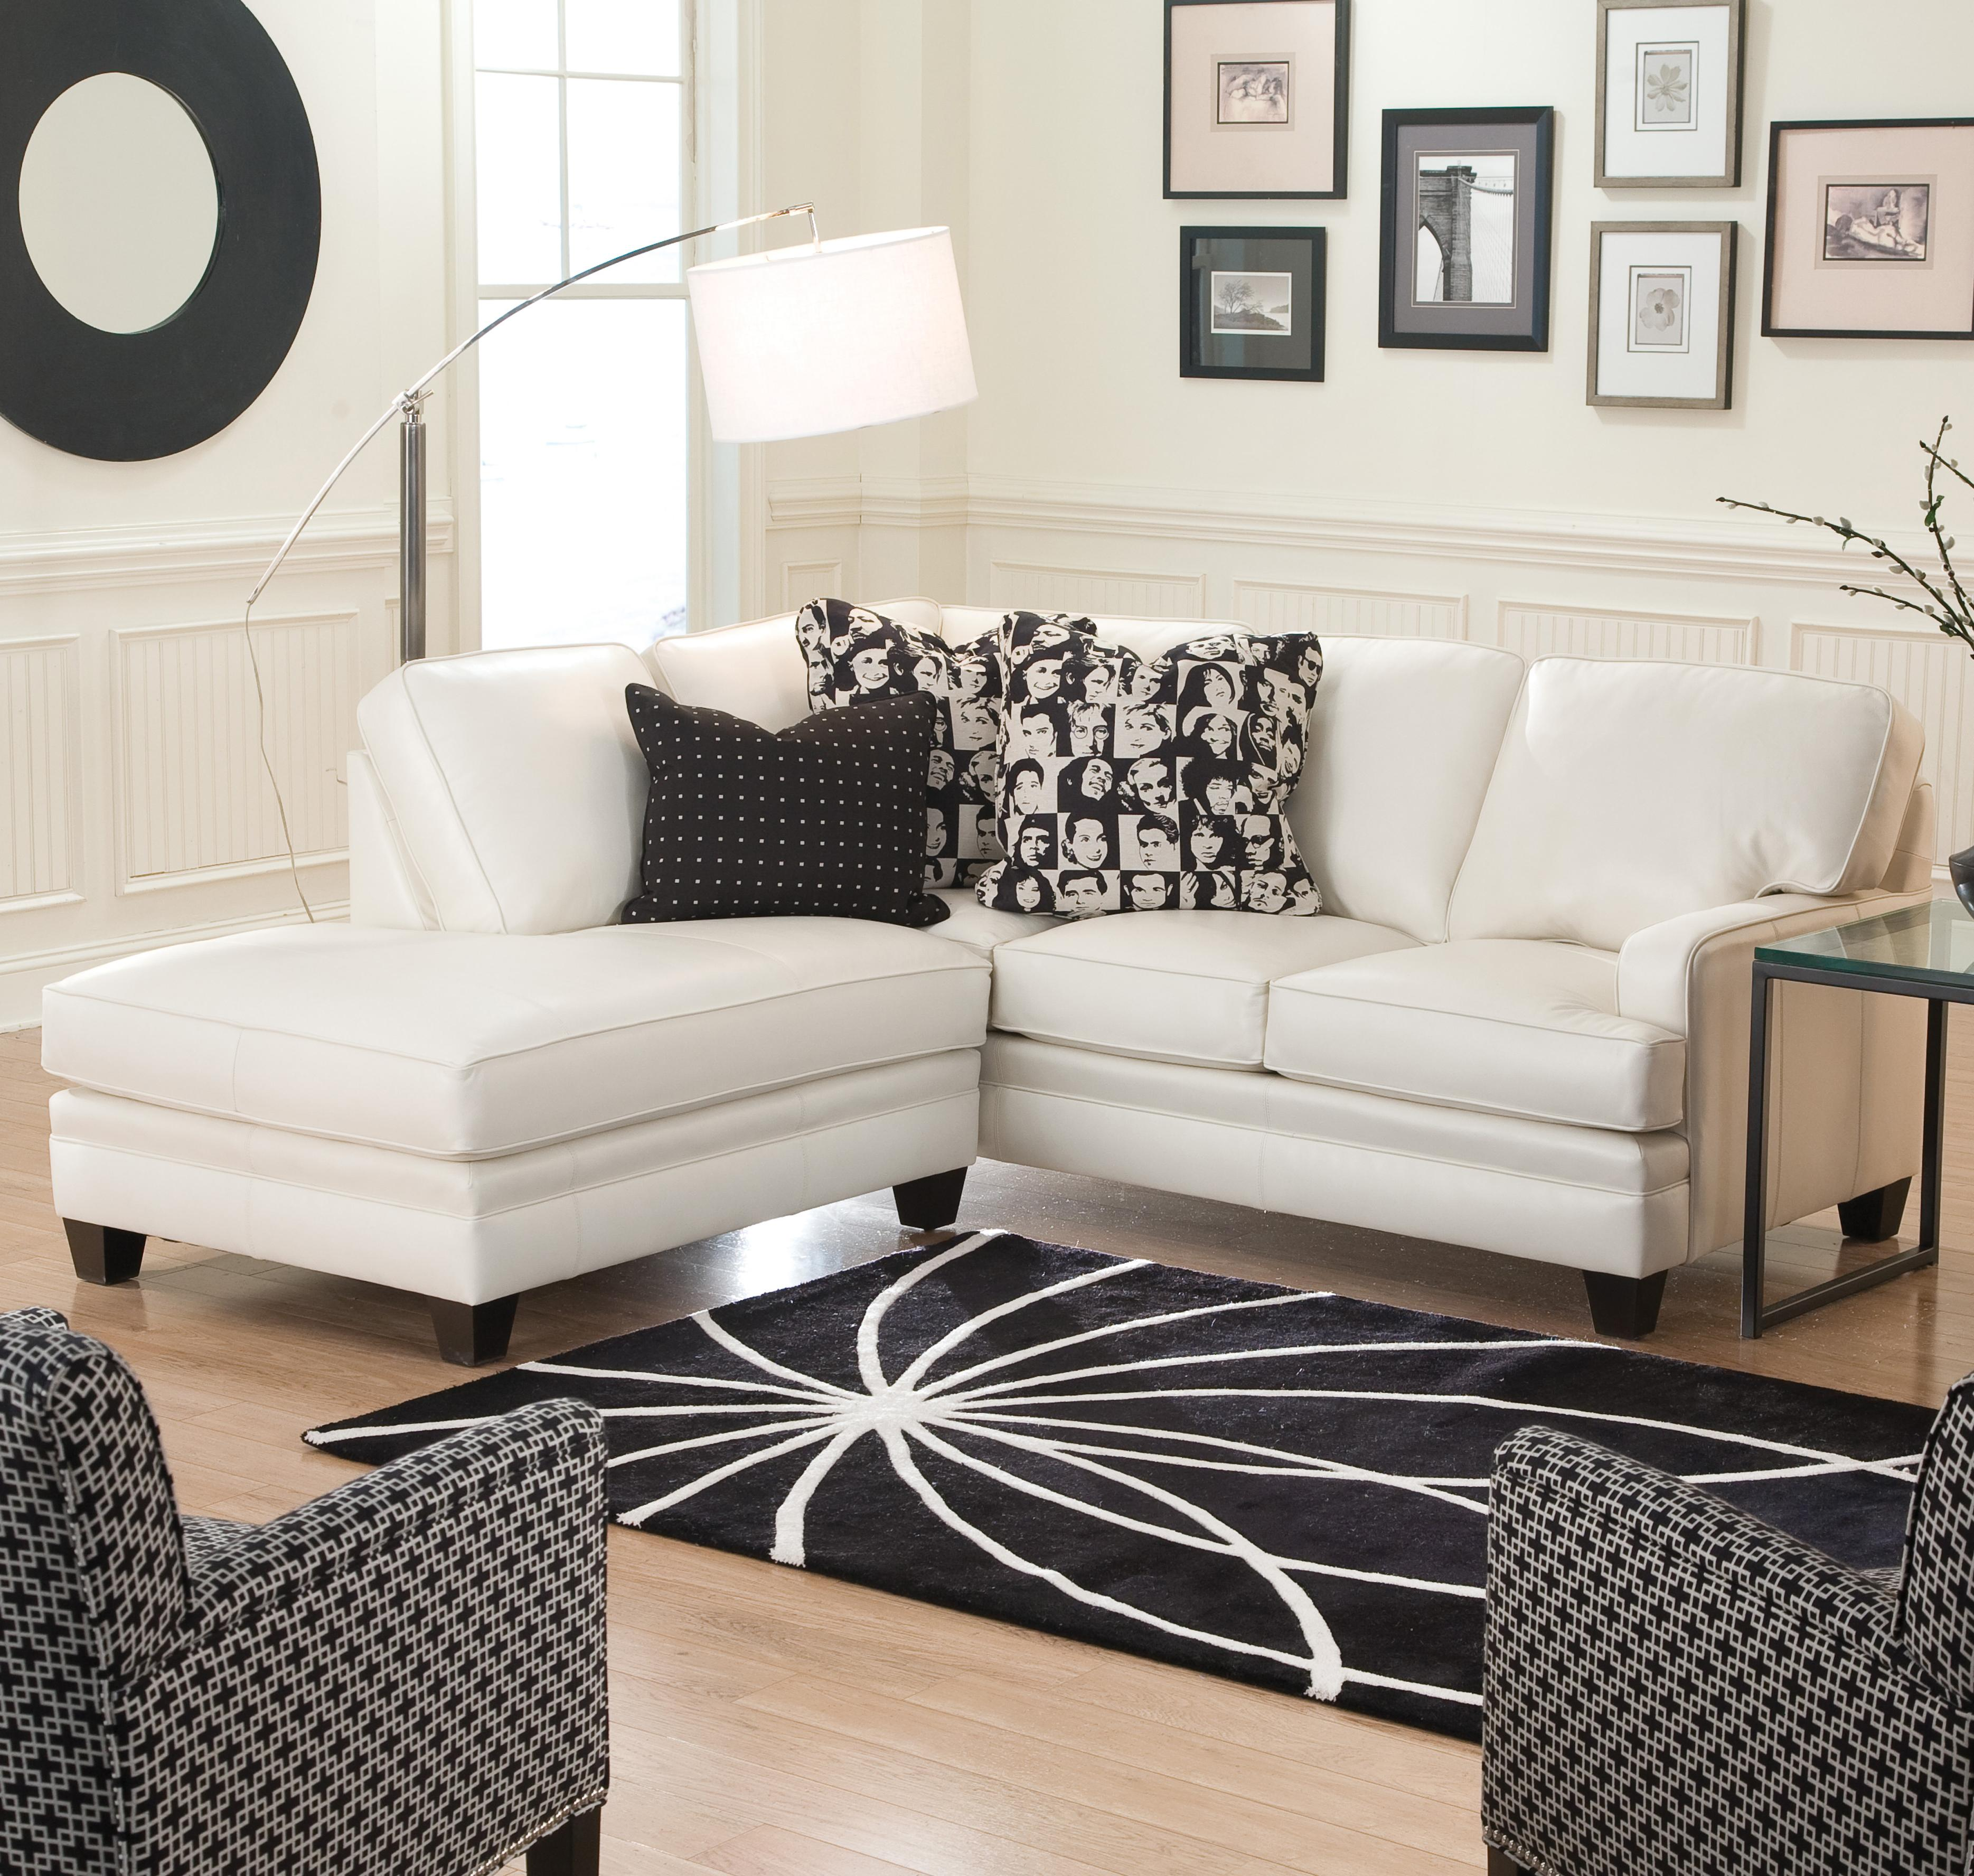 New Sofas For Small Rooms 64 In Sofa Room Ideas with Sofas For Small Rooms